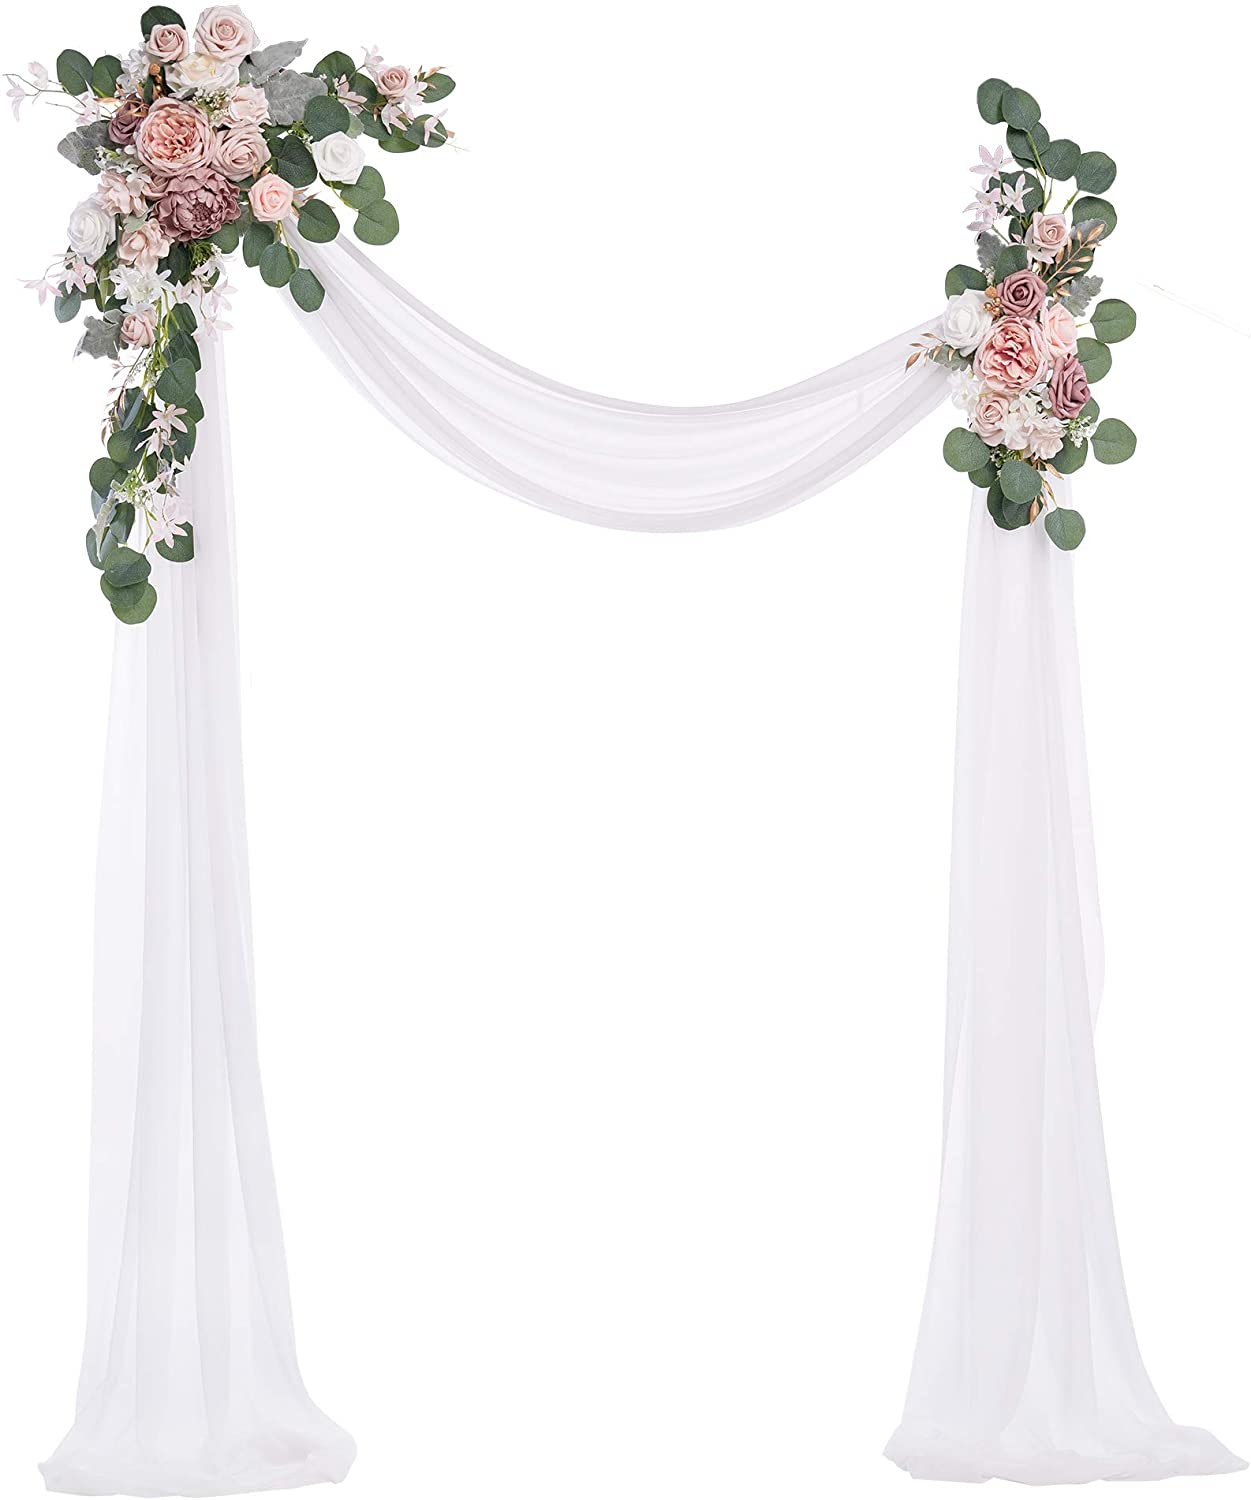 Year-end annual account Ling's moment Artificial Wedding Super-cheap Arch Flowers of Pack 3 Kit - 2